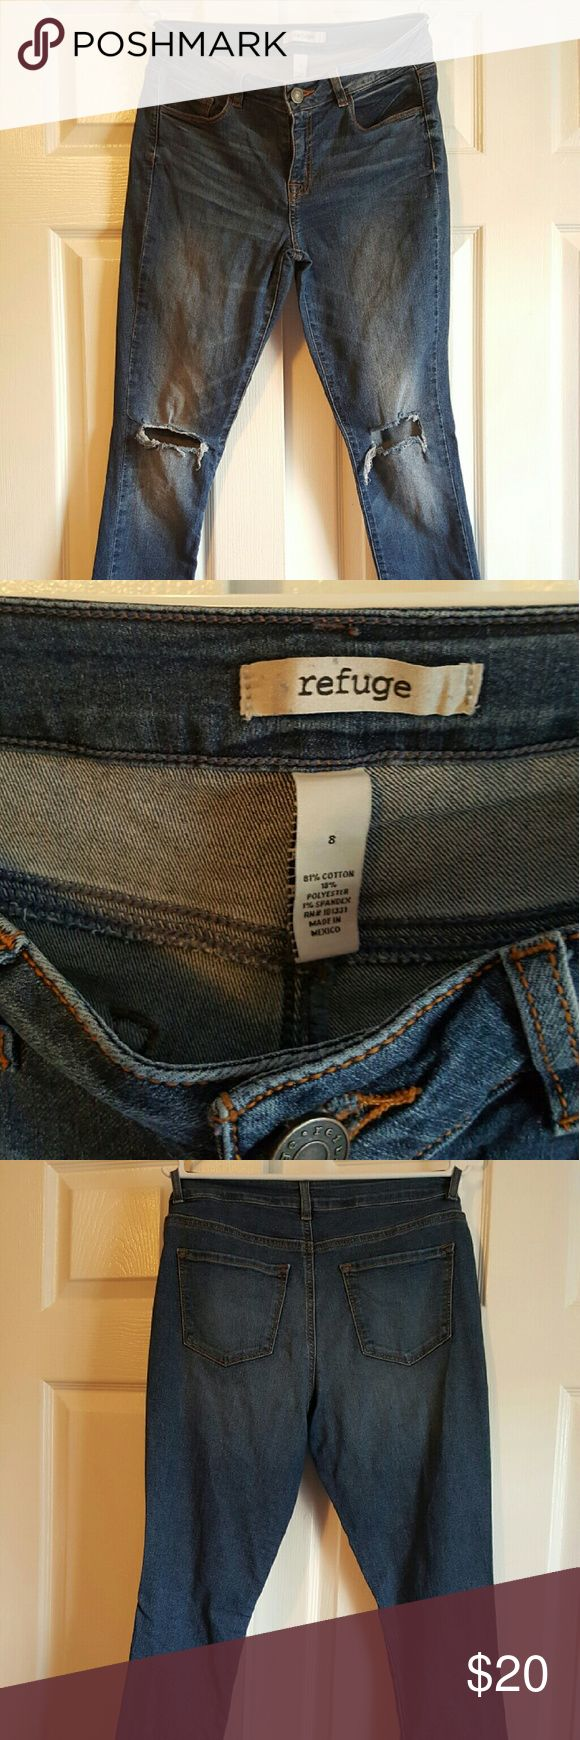 Refuge Women Jean's only worn twice Size 8 Refuge Women Jean's only worn twice Size 8. Ripped Knees the Jean's come that way... Beautiful Stylish pair of every day jeans... refuge Jeans Skinny